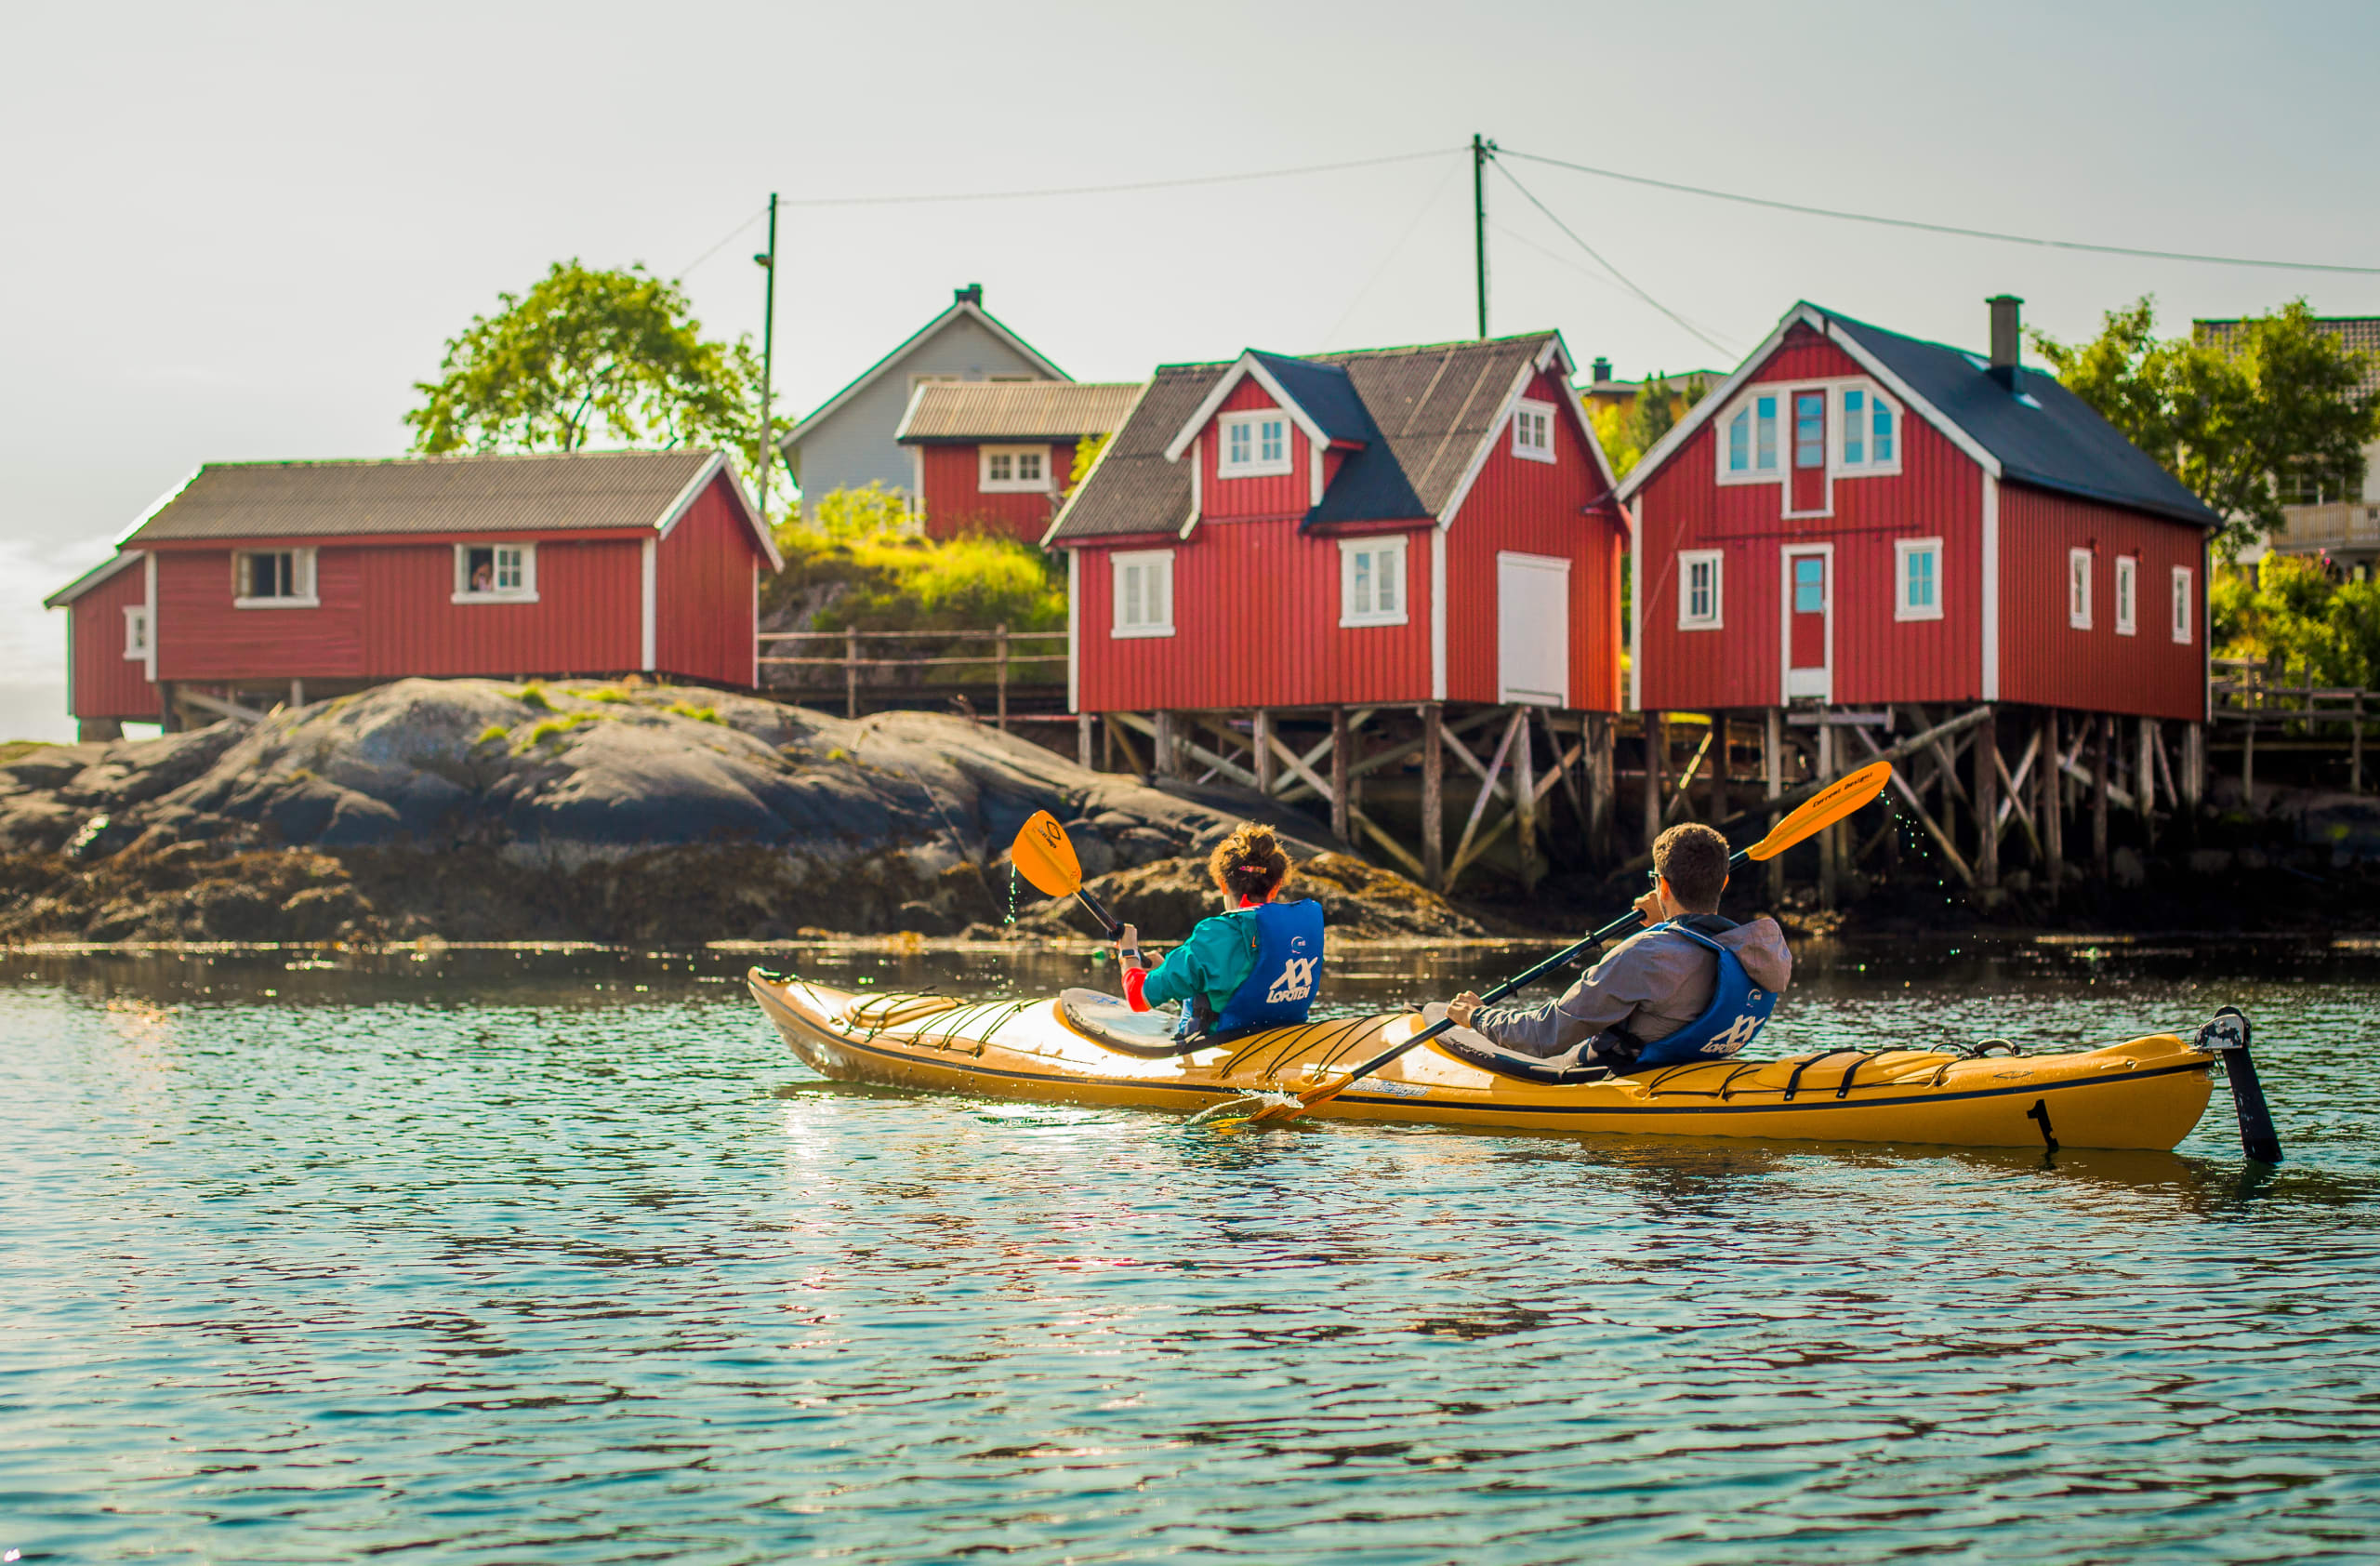 Kayaking past fishing huts in Lofoten